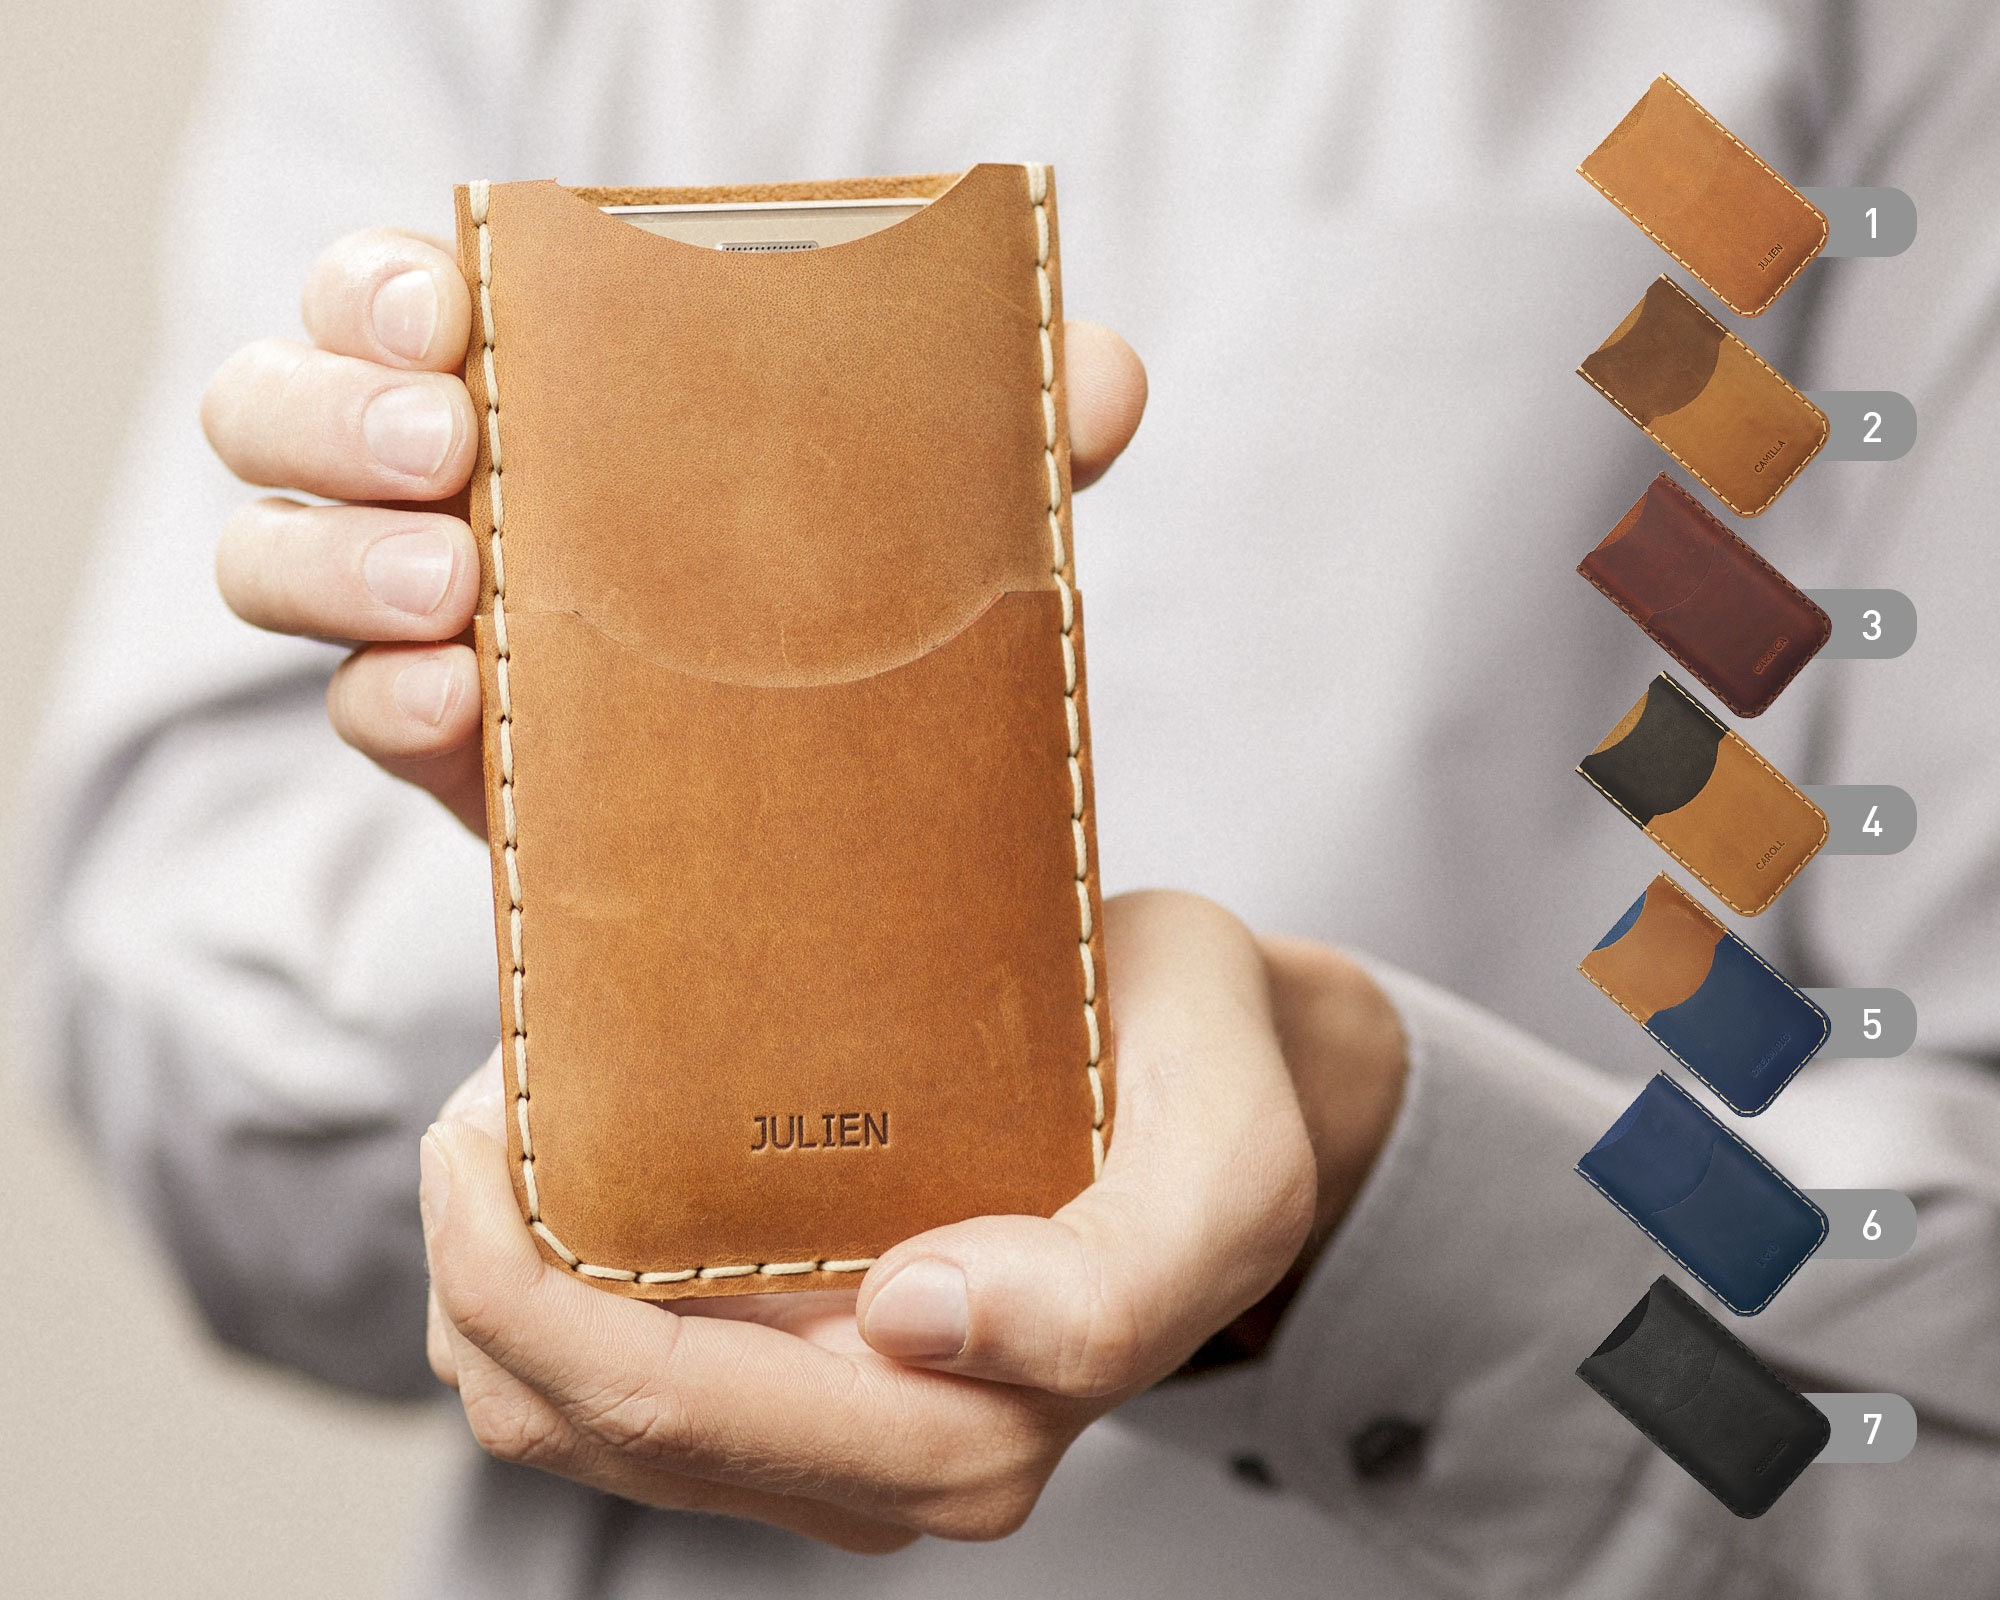 b78e55e3b HAPPER STUDIO leather covers, custom cases, personalized wallets and sleeves